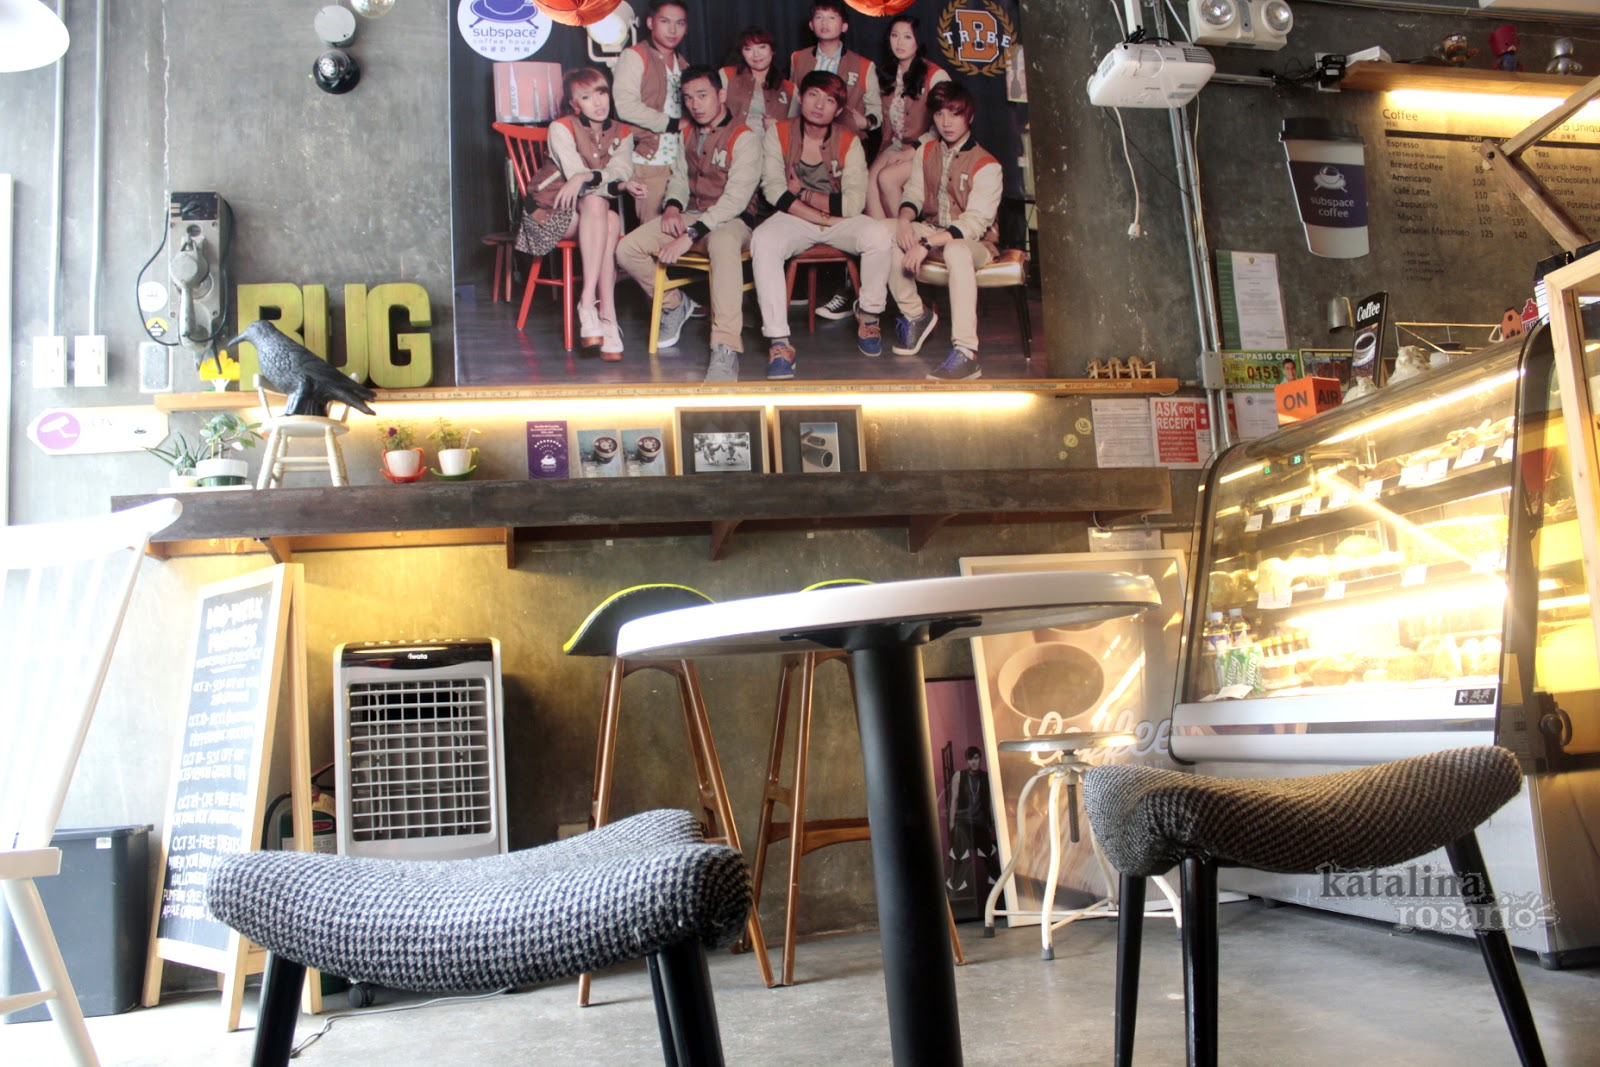 Places To Borrow Tables And Chairs Swing Chair Baby Sale Subspace Coffee House A Comfy Korean Cafe Within The Busy